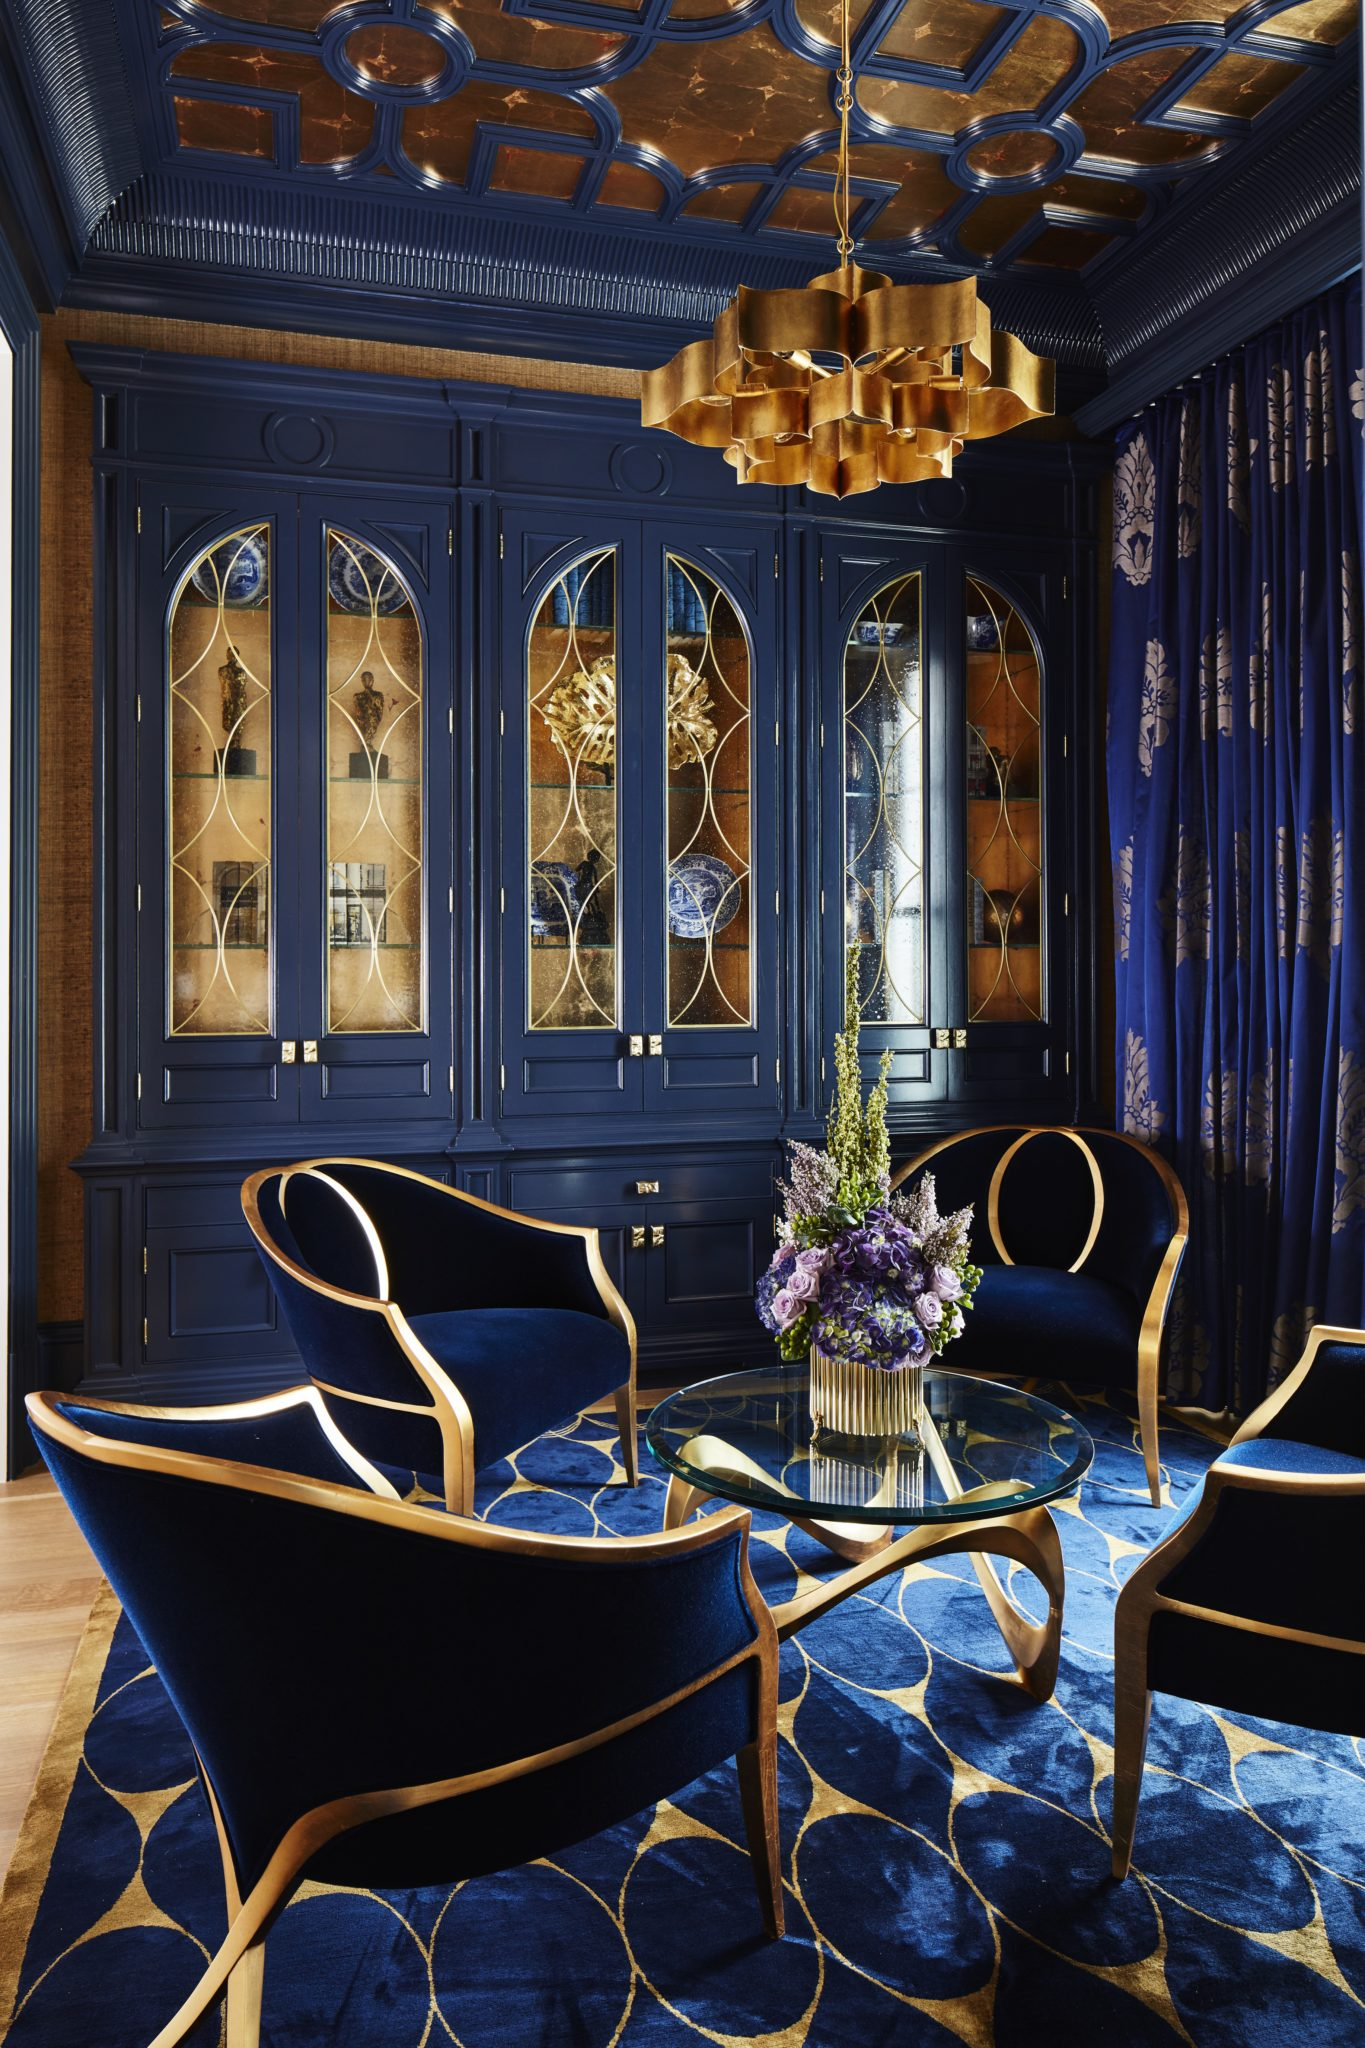 Bold Navy & Gold Parlour, with gold leaf ceiling details, custom cabinets & rug by Alexandra Naranjo Designs